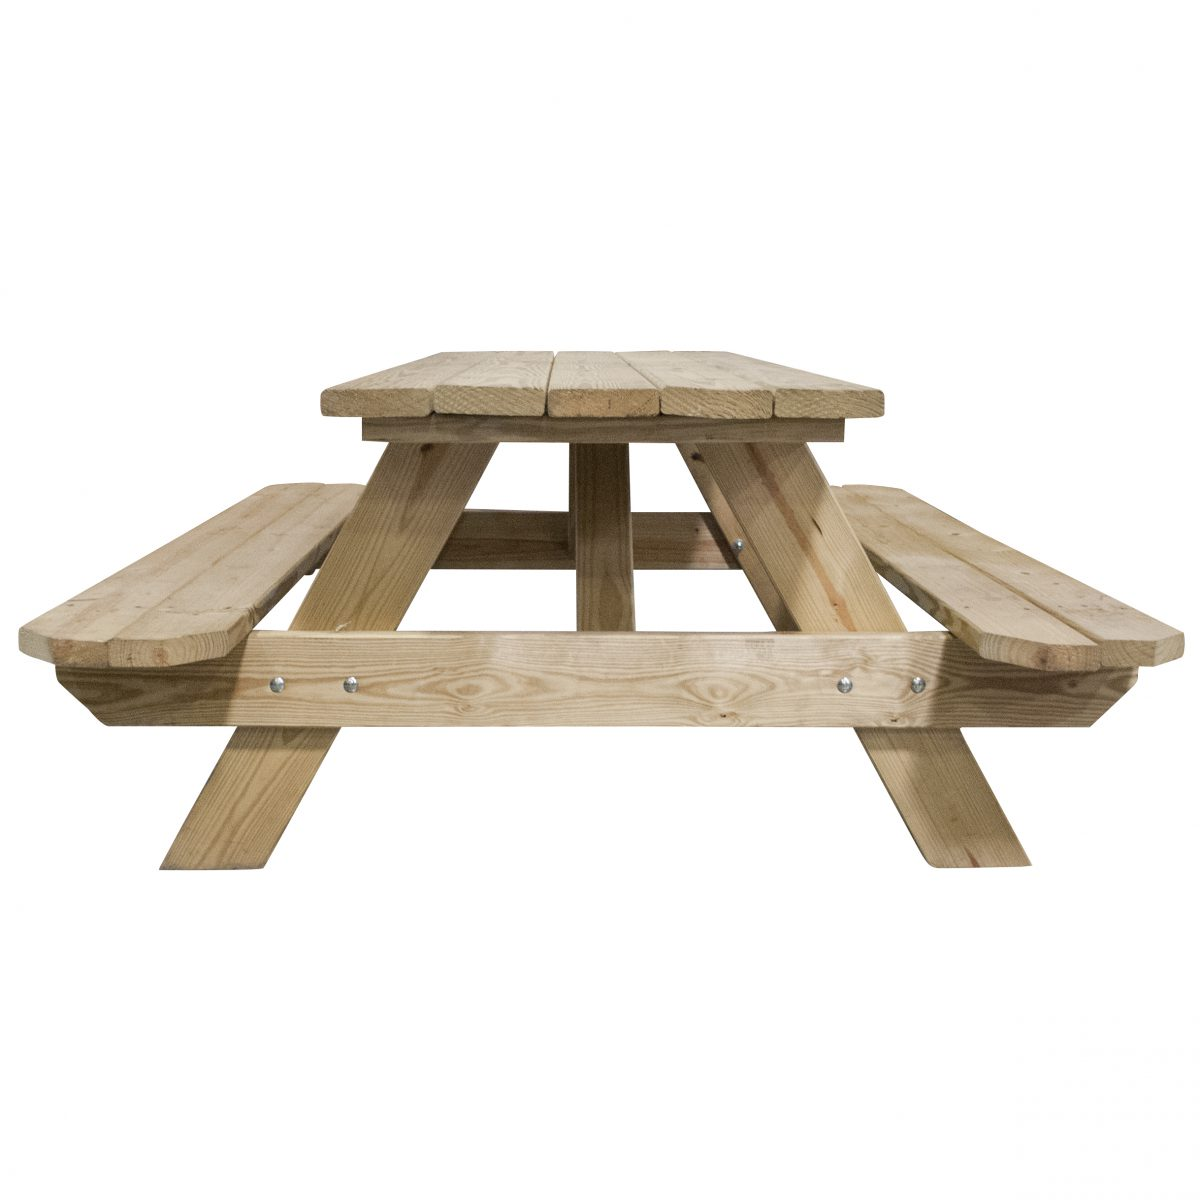 Picnic Table Celebrations Party Rentals